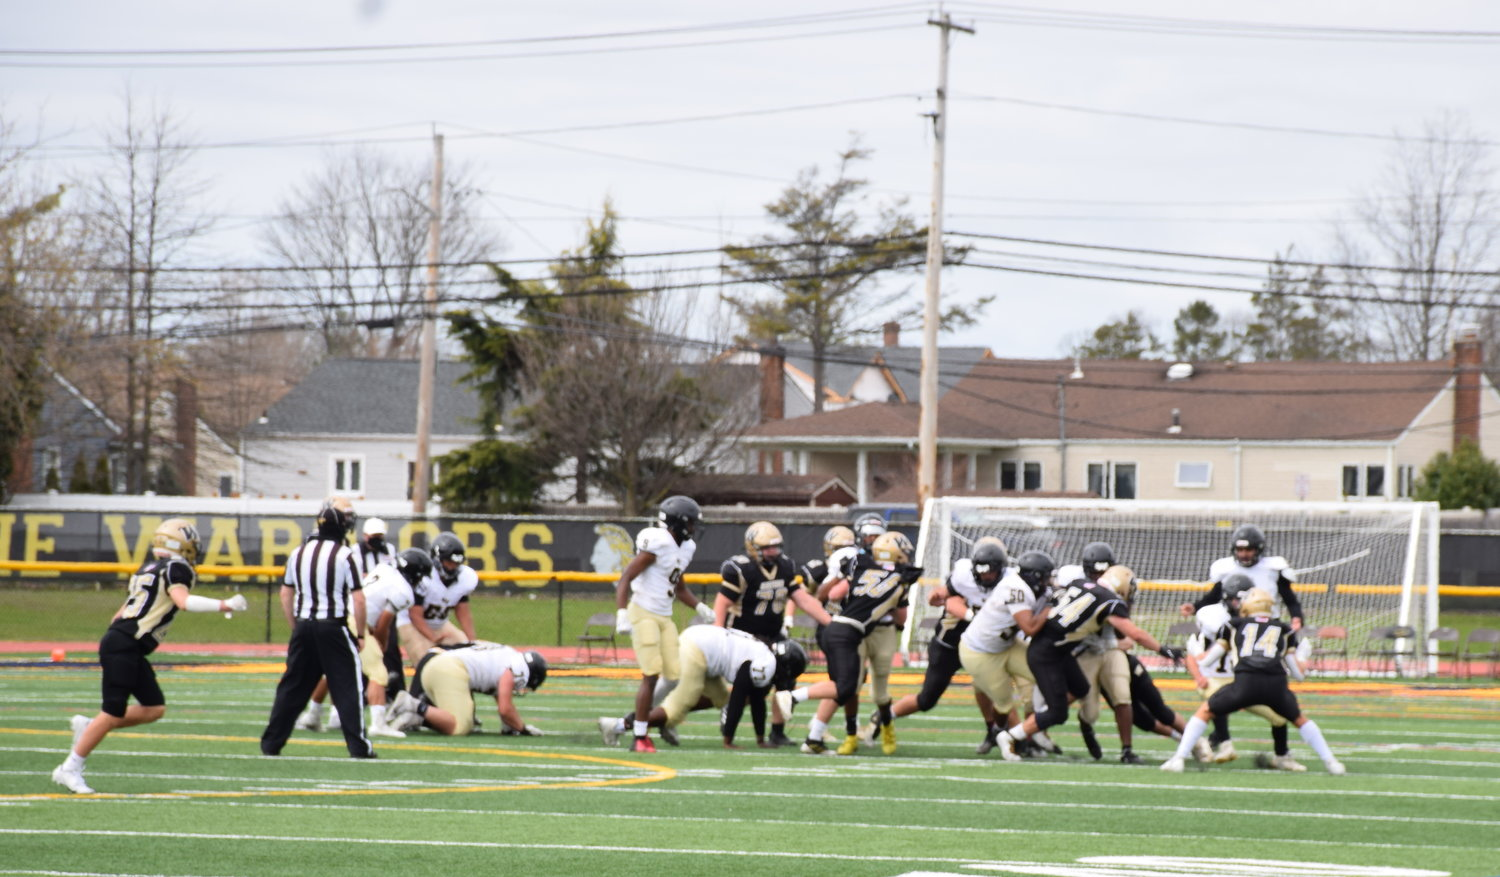 The Wantagh High School Warriors beat the West Hempstead Rams 37 to 6 during its Homecoming game on April 10.